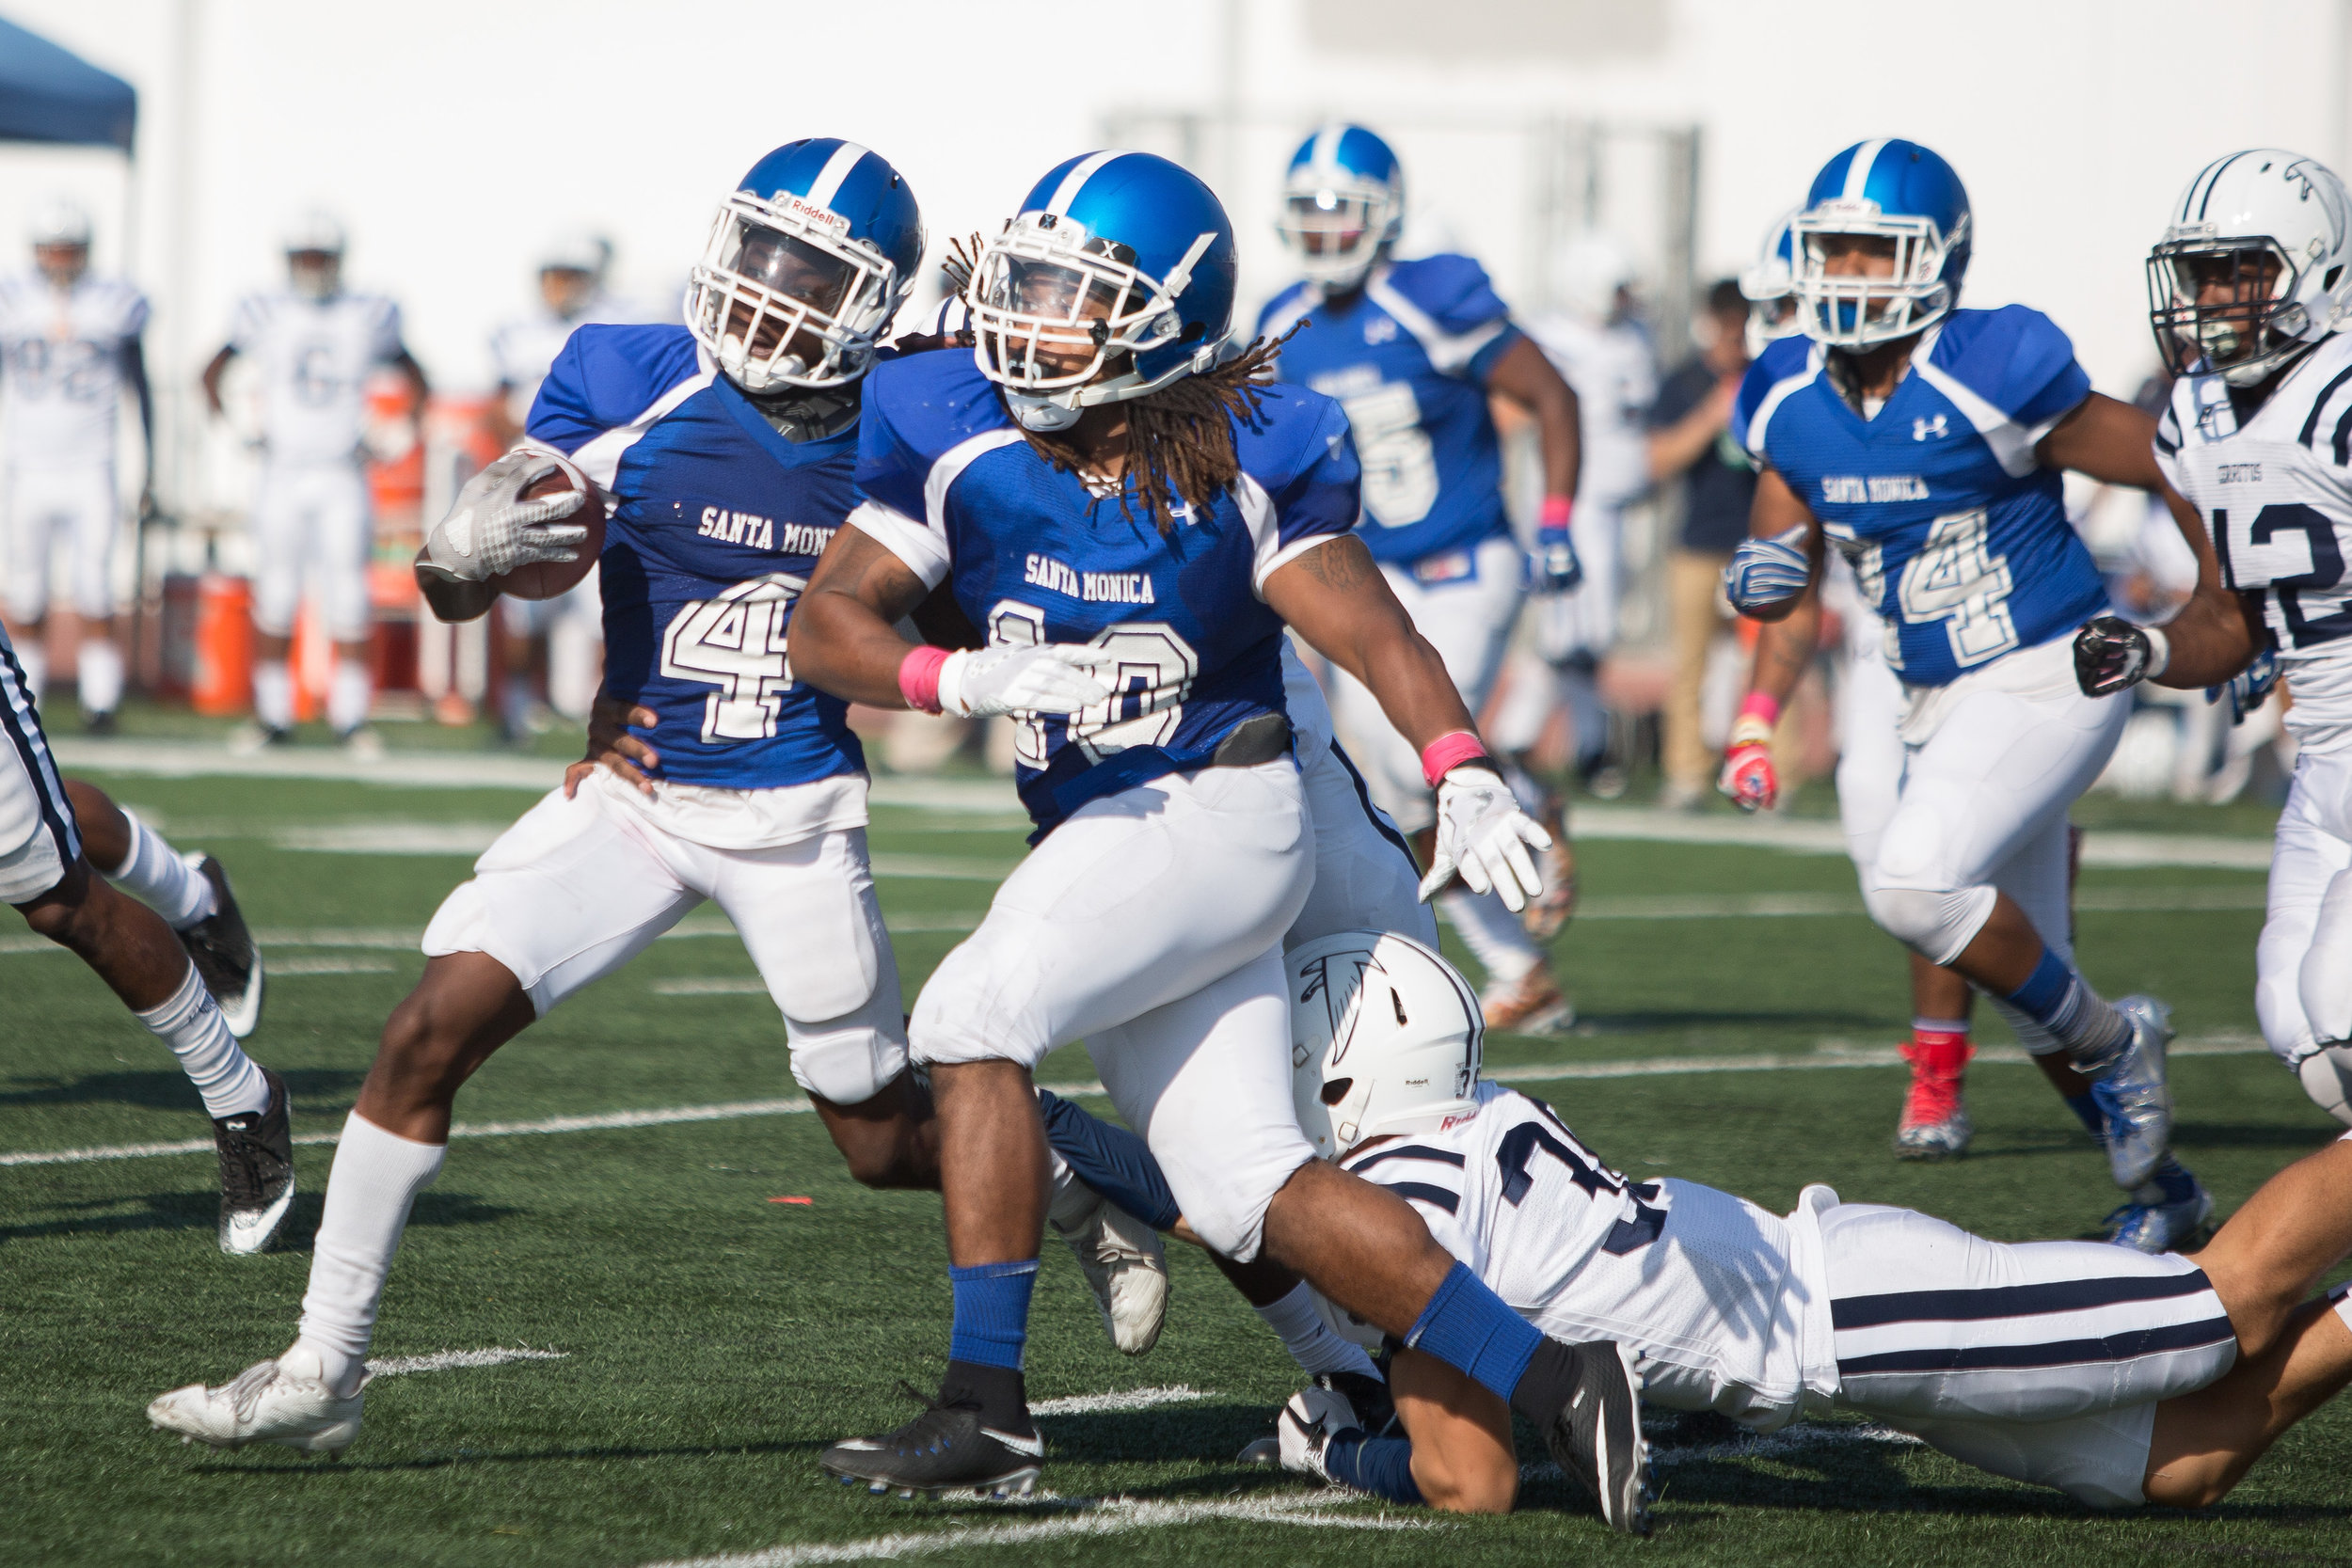 Wide receiver Christian Franklin (4) of Santa Monica College runs away from player of Cerritos College. The Santa Monica College Corsairs lose the game 7-31 against Cerritos Falcons on Saturday, October 14th, 2017 at the Corsair Stadium at Santa Monica College in Santa Monica, California. (Photo by Yuki Iwamura)